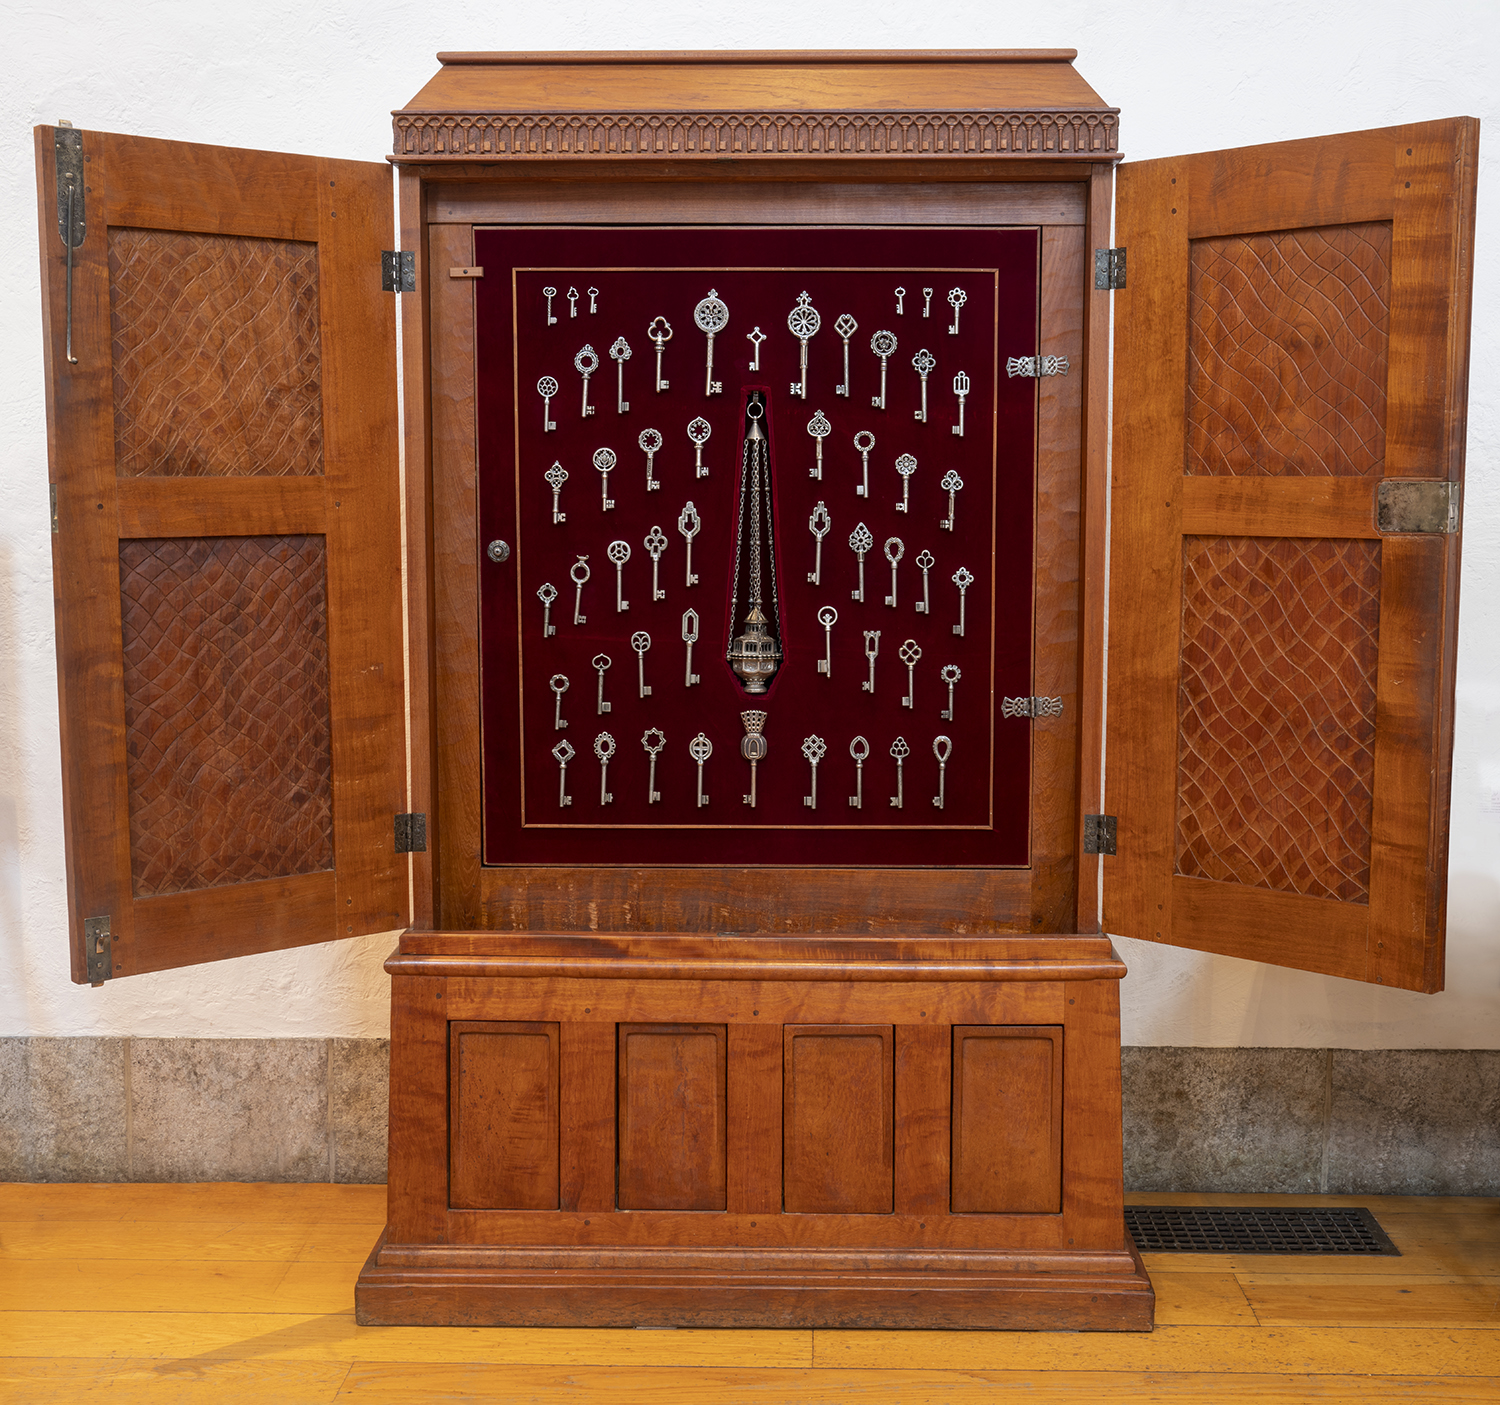 """Figure 6: The key cabinet in Bryn Athyn Cathedral. Each of the keys is unique, illustrating a design principle that was employed throughout the Cathedral. In 1920 Raymond Pitcairn delivered a speech titled, """"Christian Art and Architecture in the New Church."""" In it he describes """"the perfection of variety"""" in which """"all things conspire to one end"""" ( New Church Life  1920: 618)."""